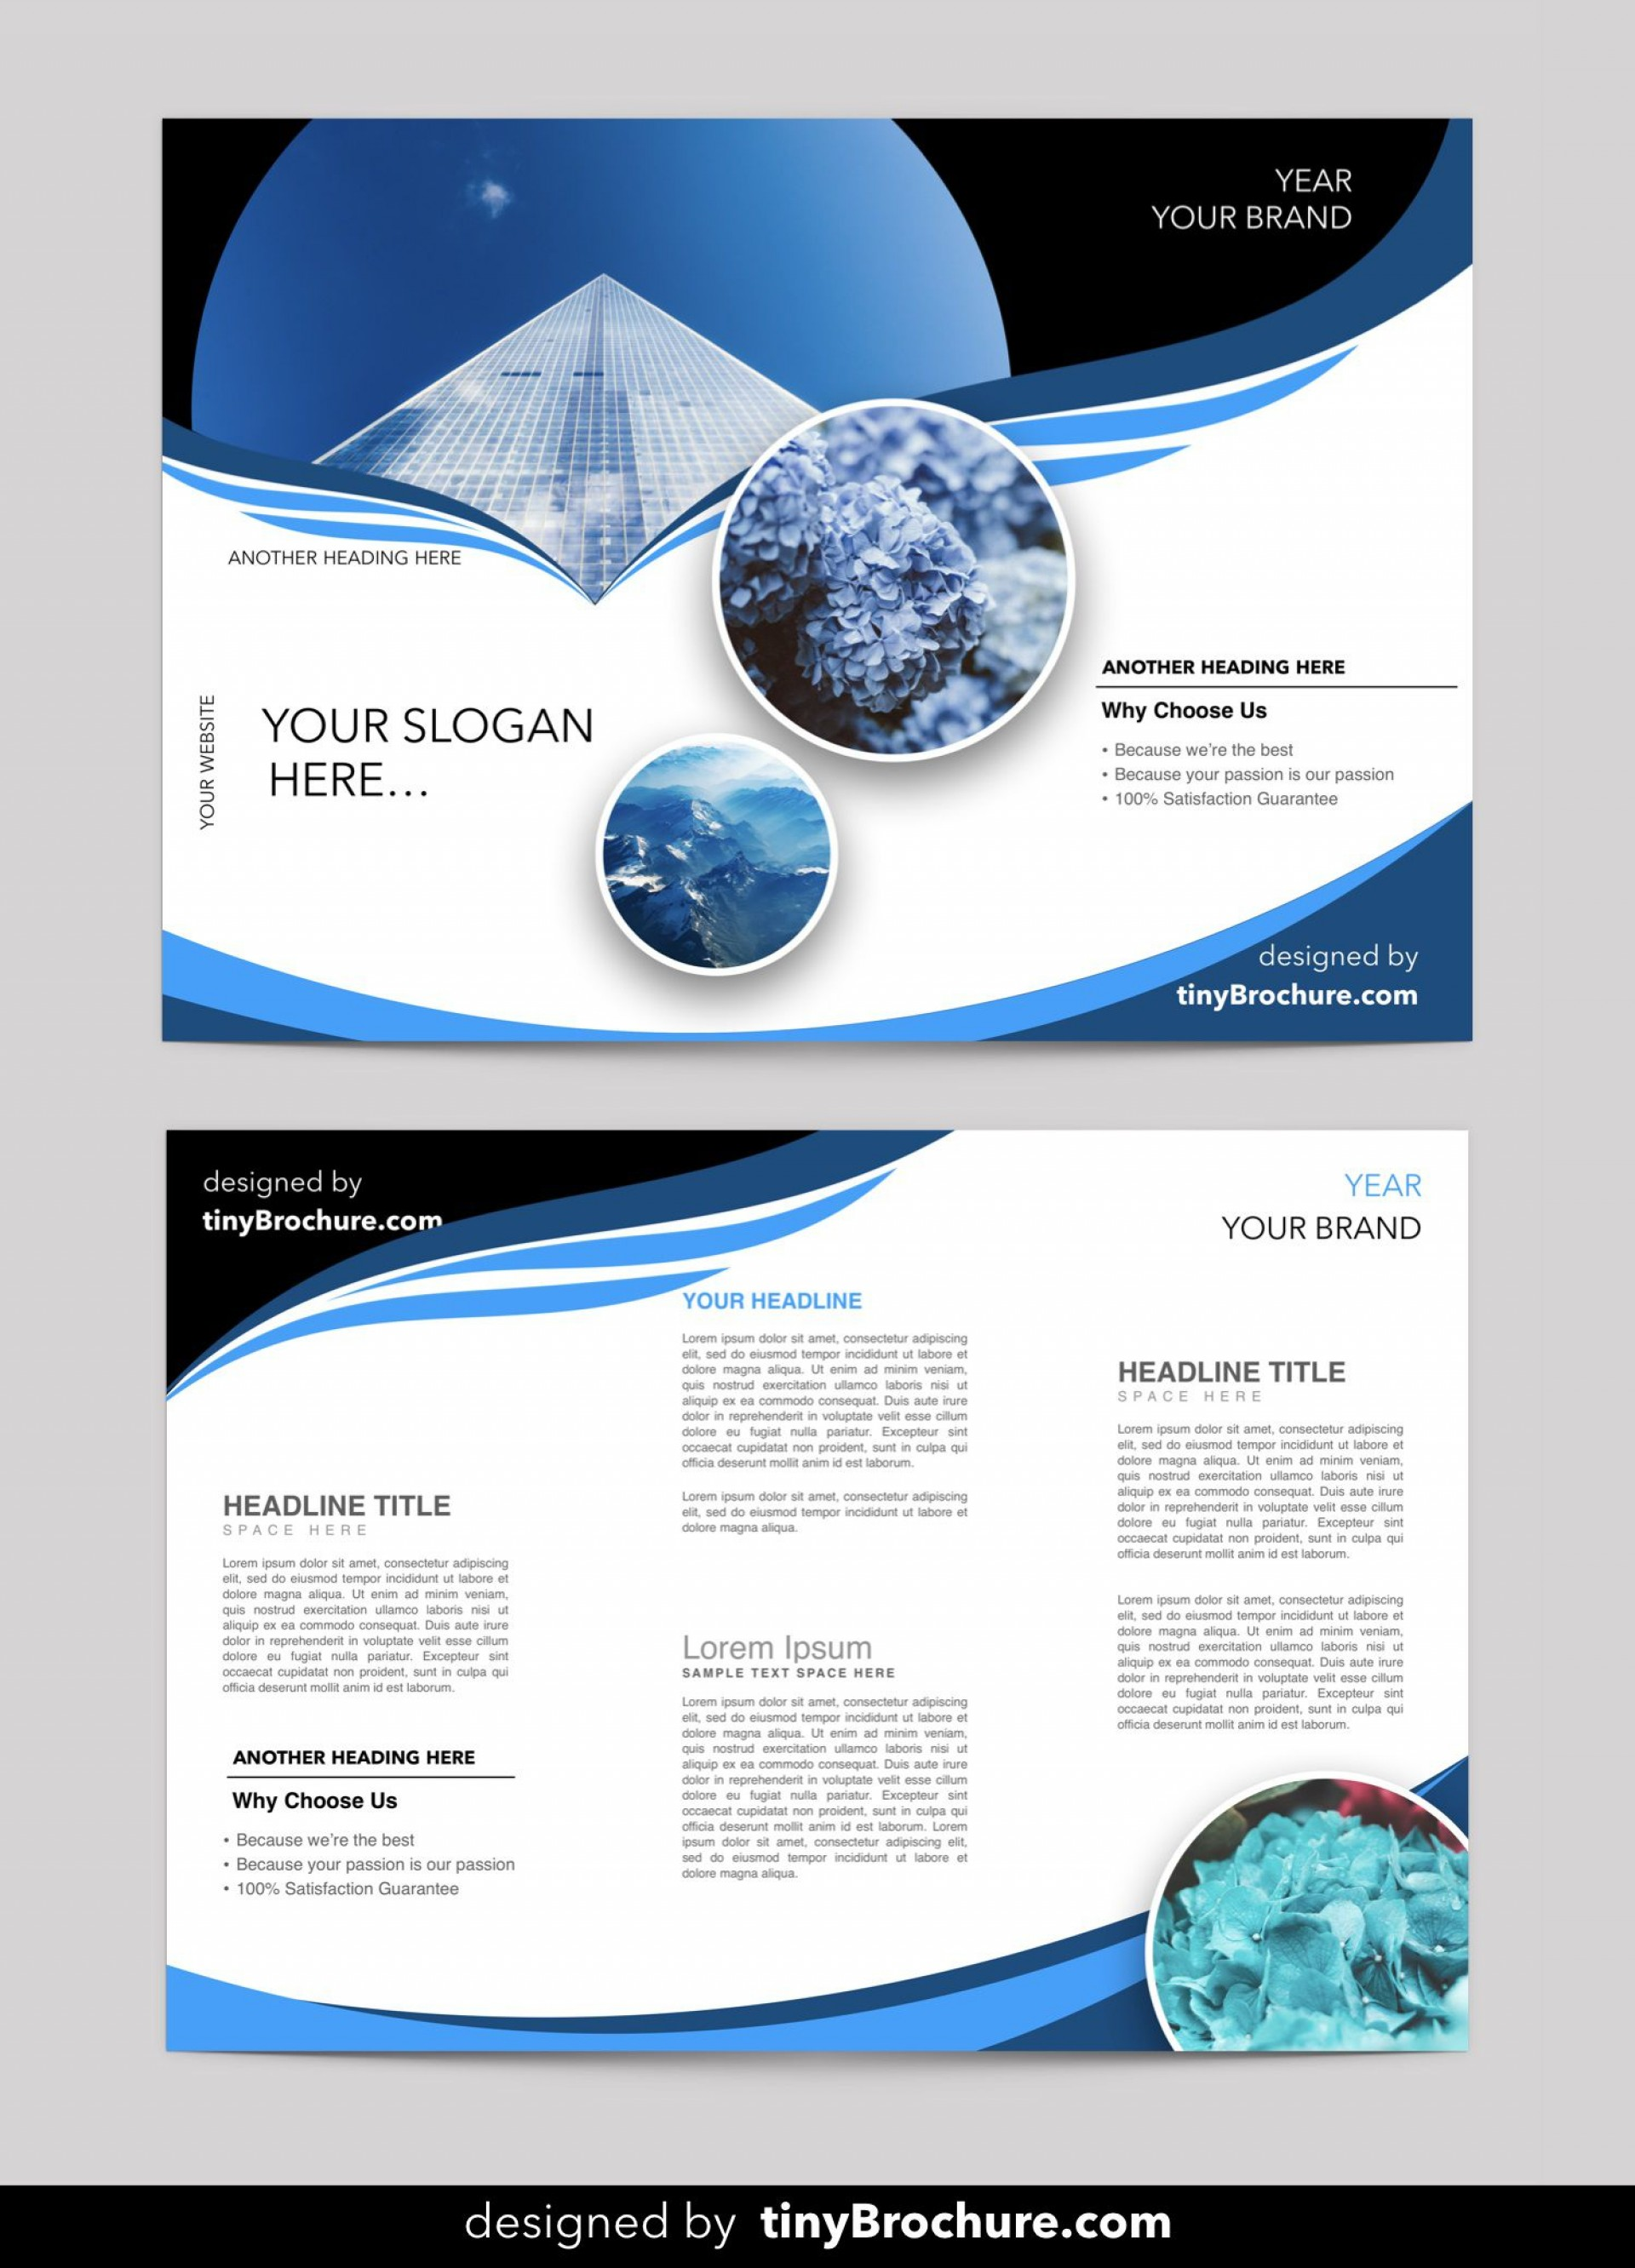 002 Awesome Download Template For Word Image  Wordpres Free Resume 2007 Addres Label1920